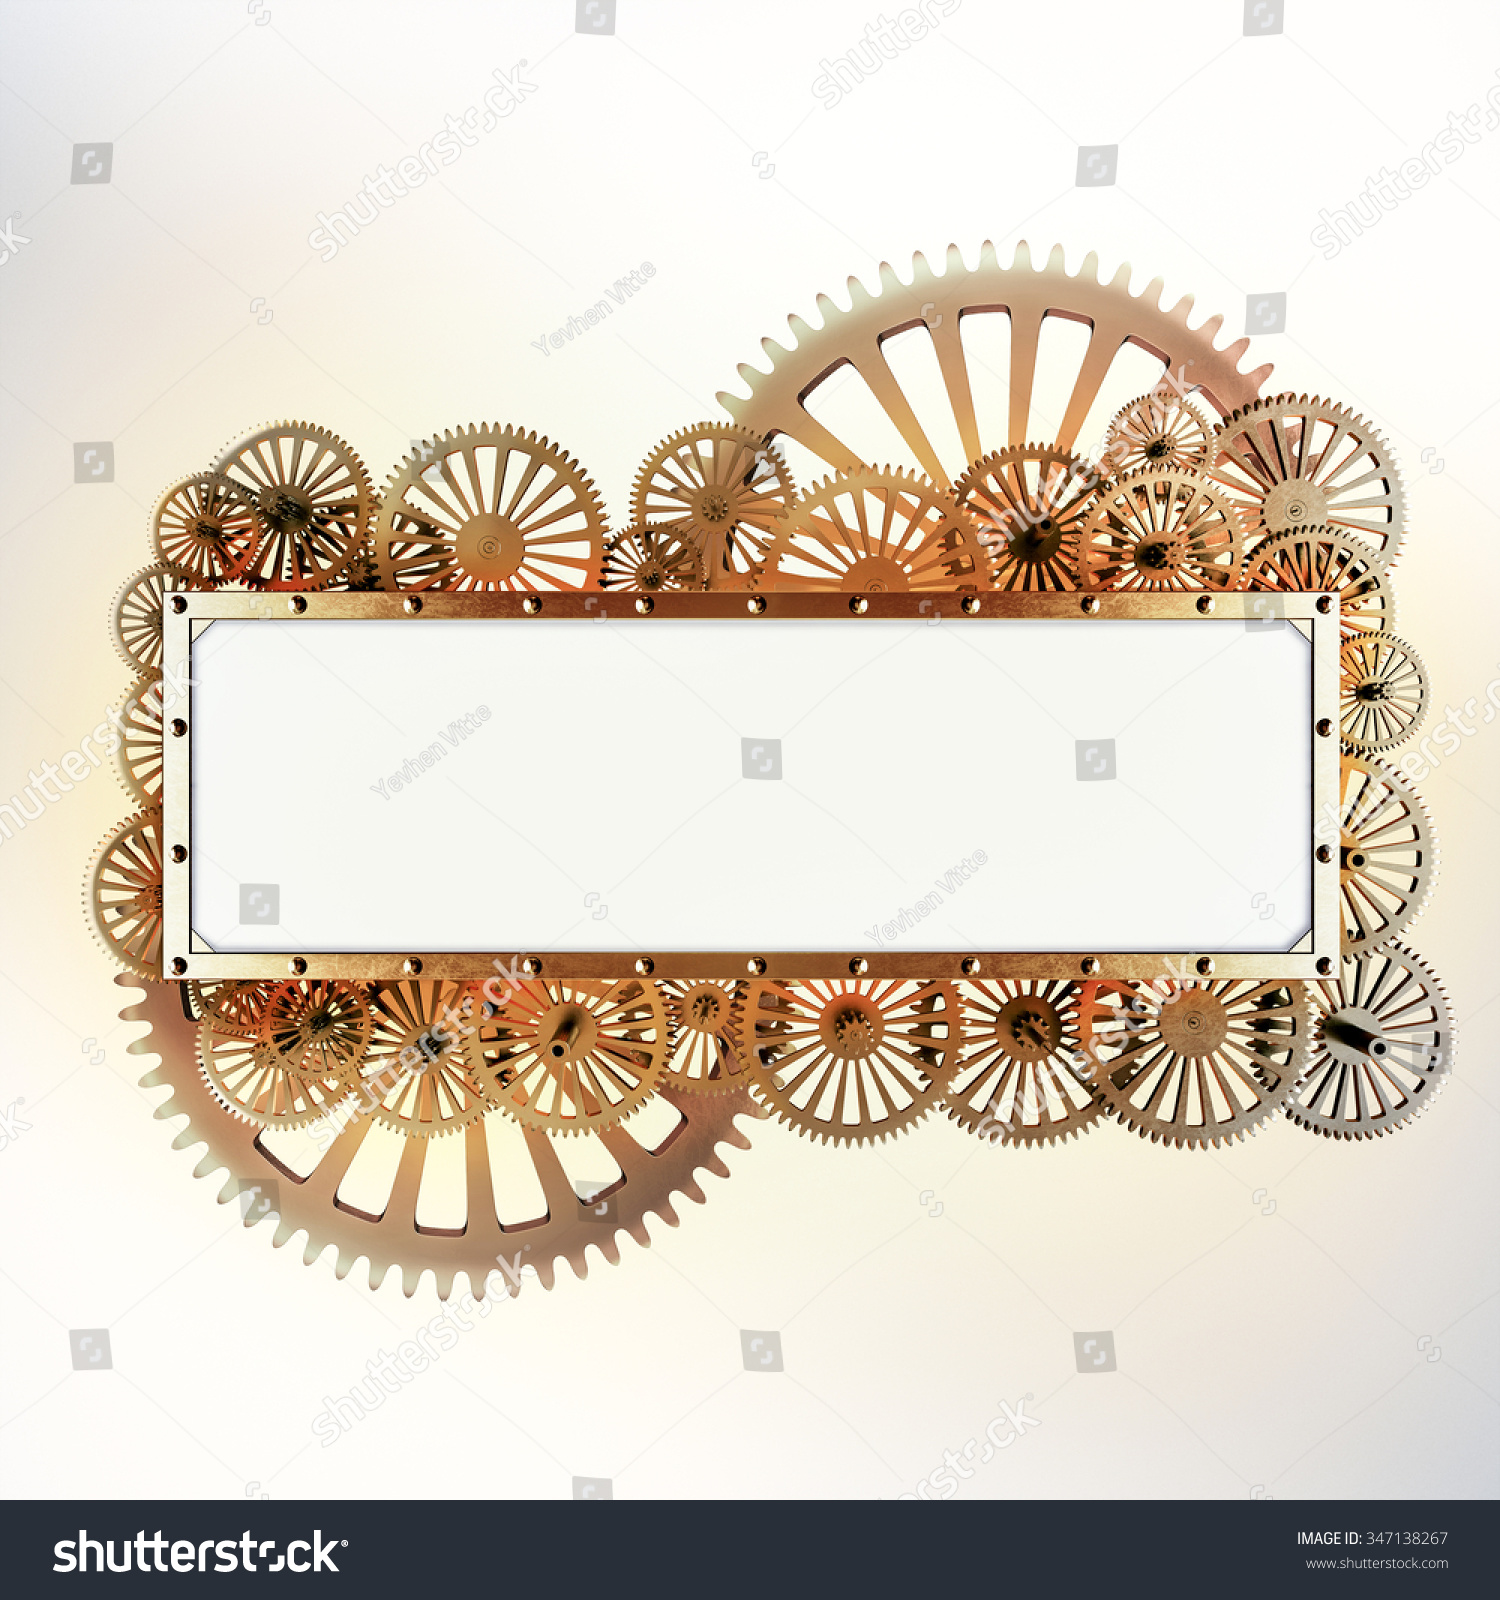 Stylized Gold Mechanical Gears Steampunk Collage  Made Of